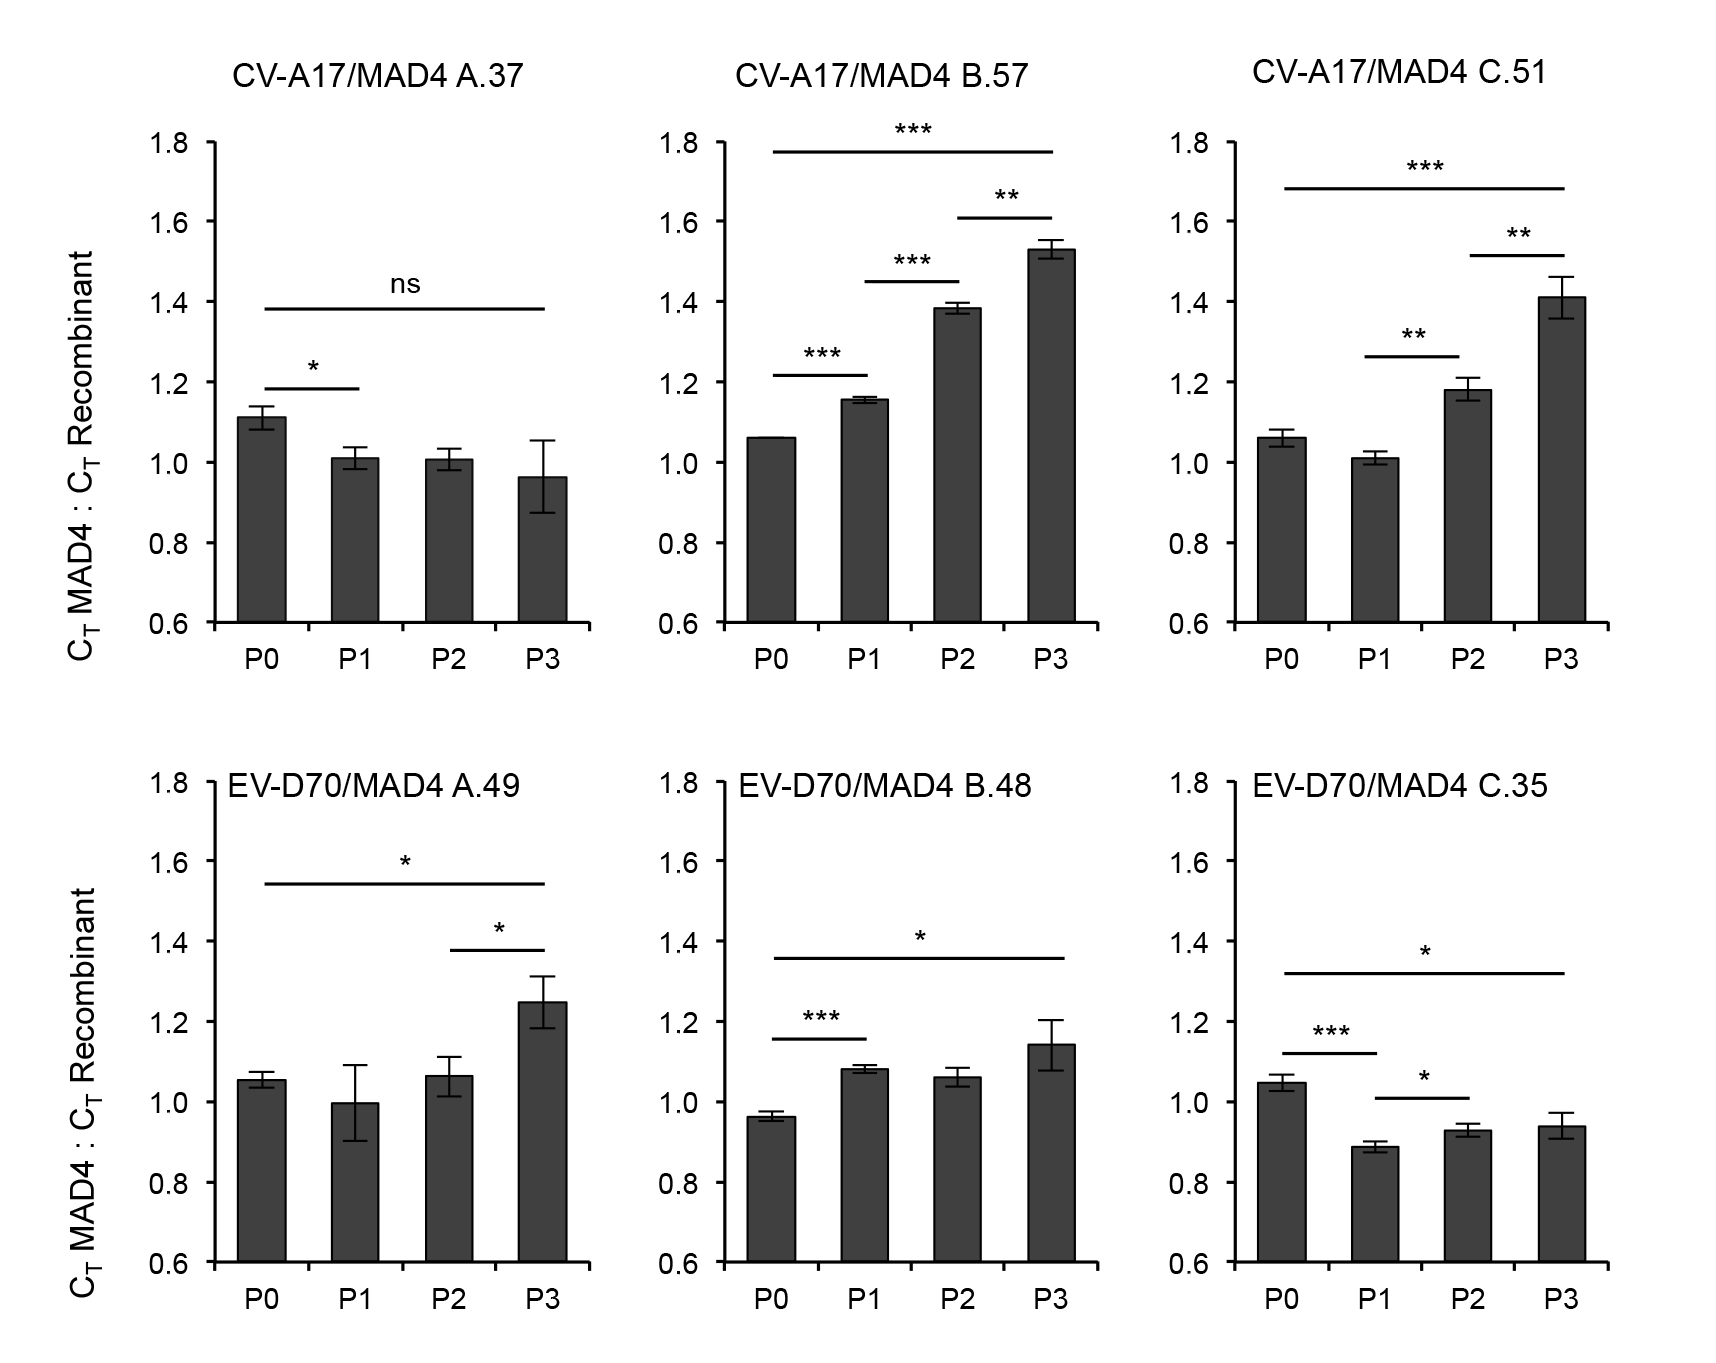 Competition assays comparing the fitness of MAD4 and selected CV-A17/MAD4 or EV-70/MAD4 homologous recombinants.